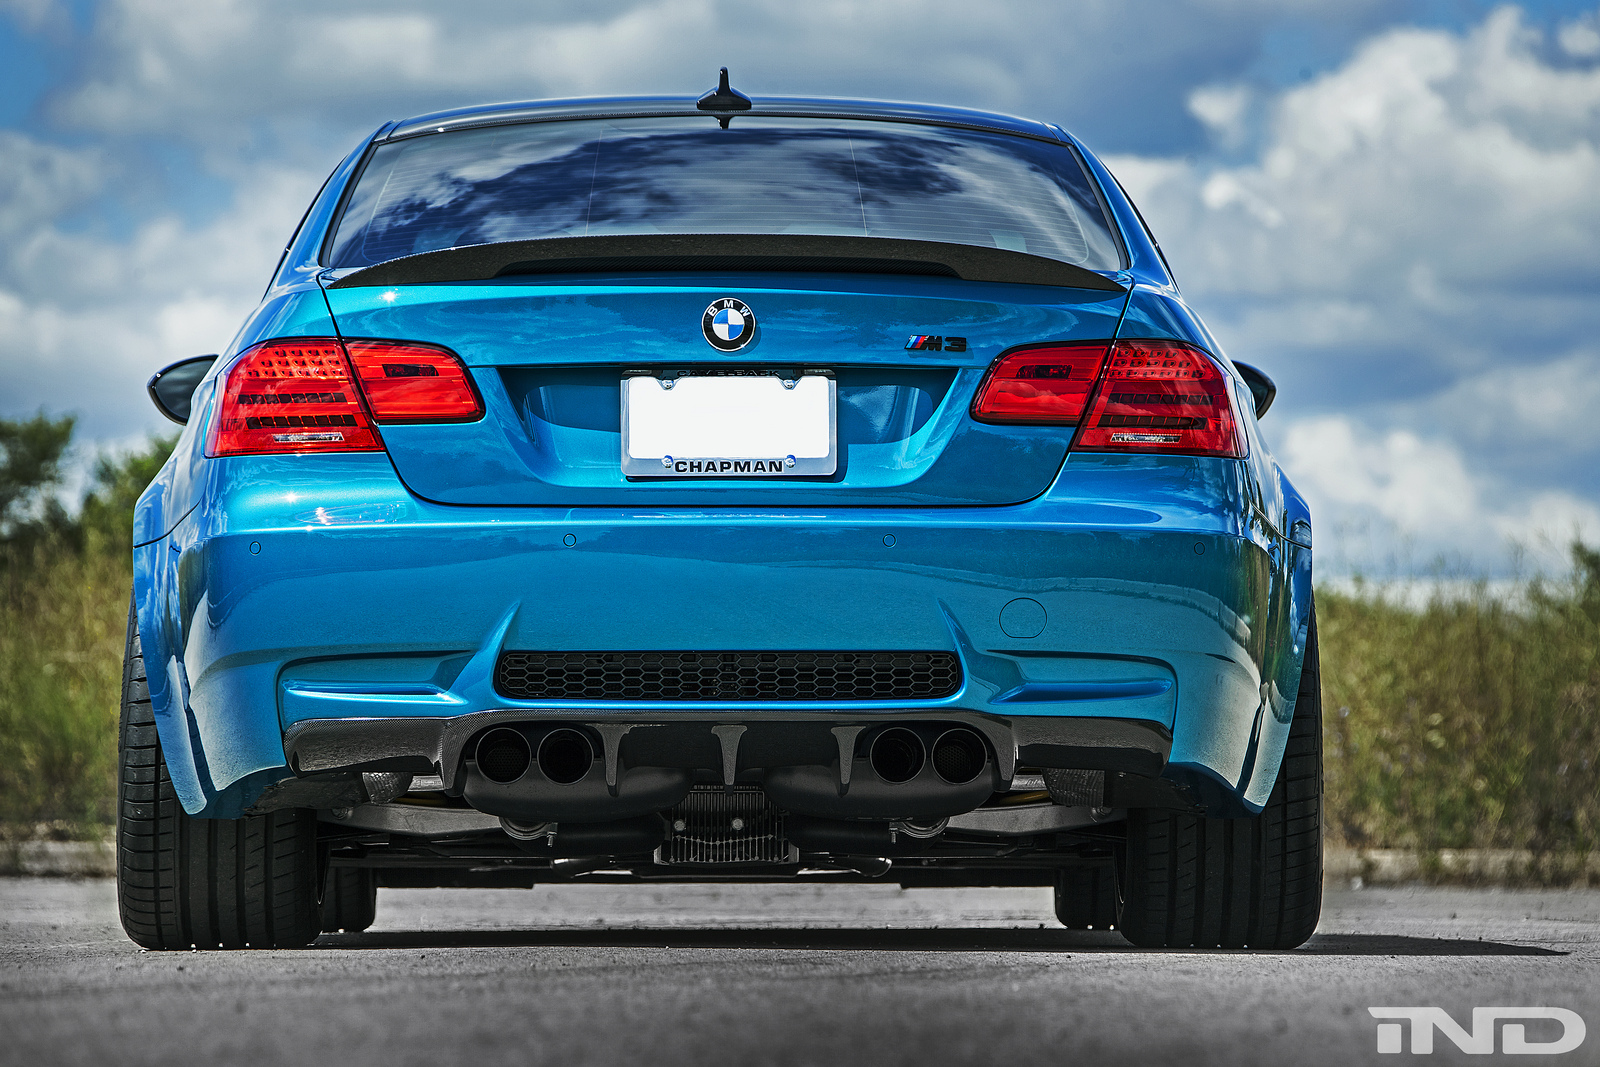 Atlantis Blue BMW E92 M3 from iND Looks Stunning ...